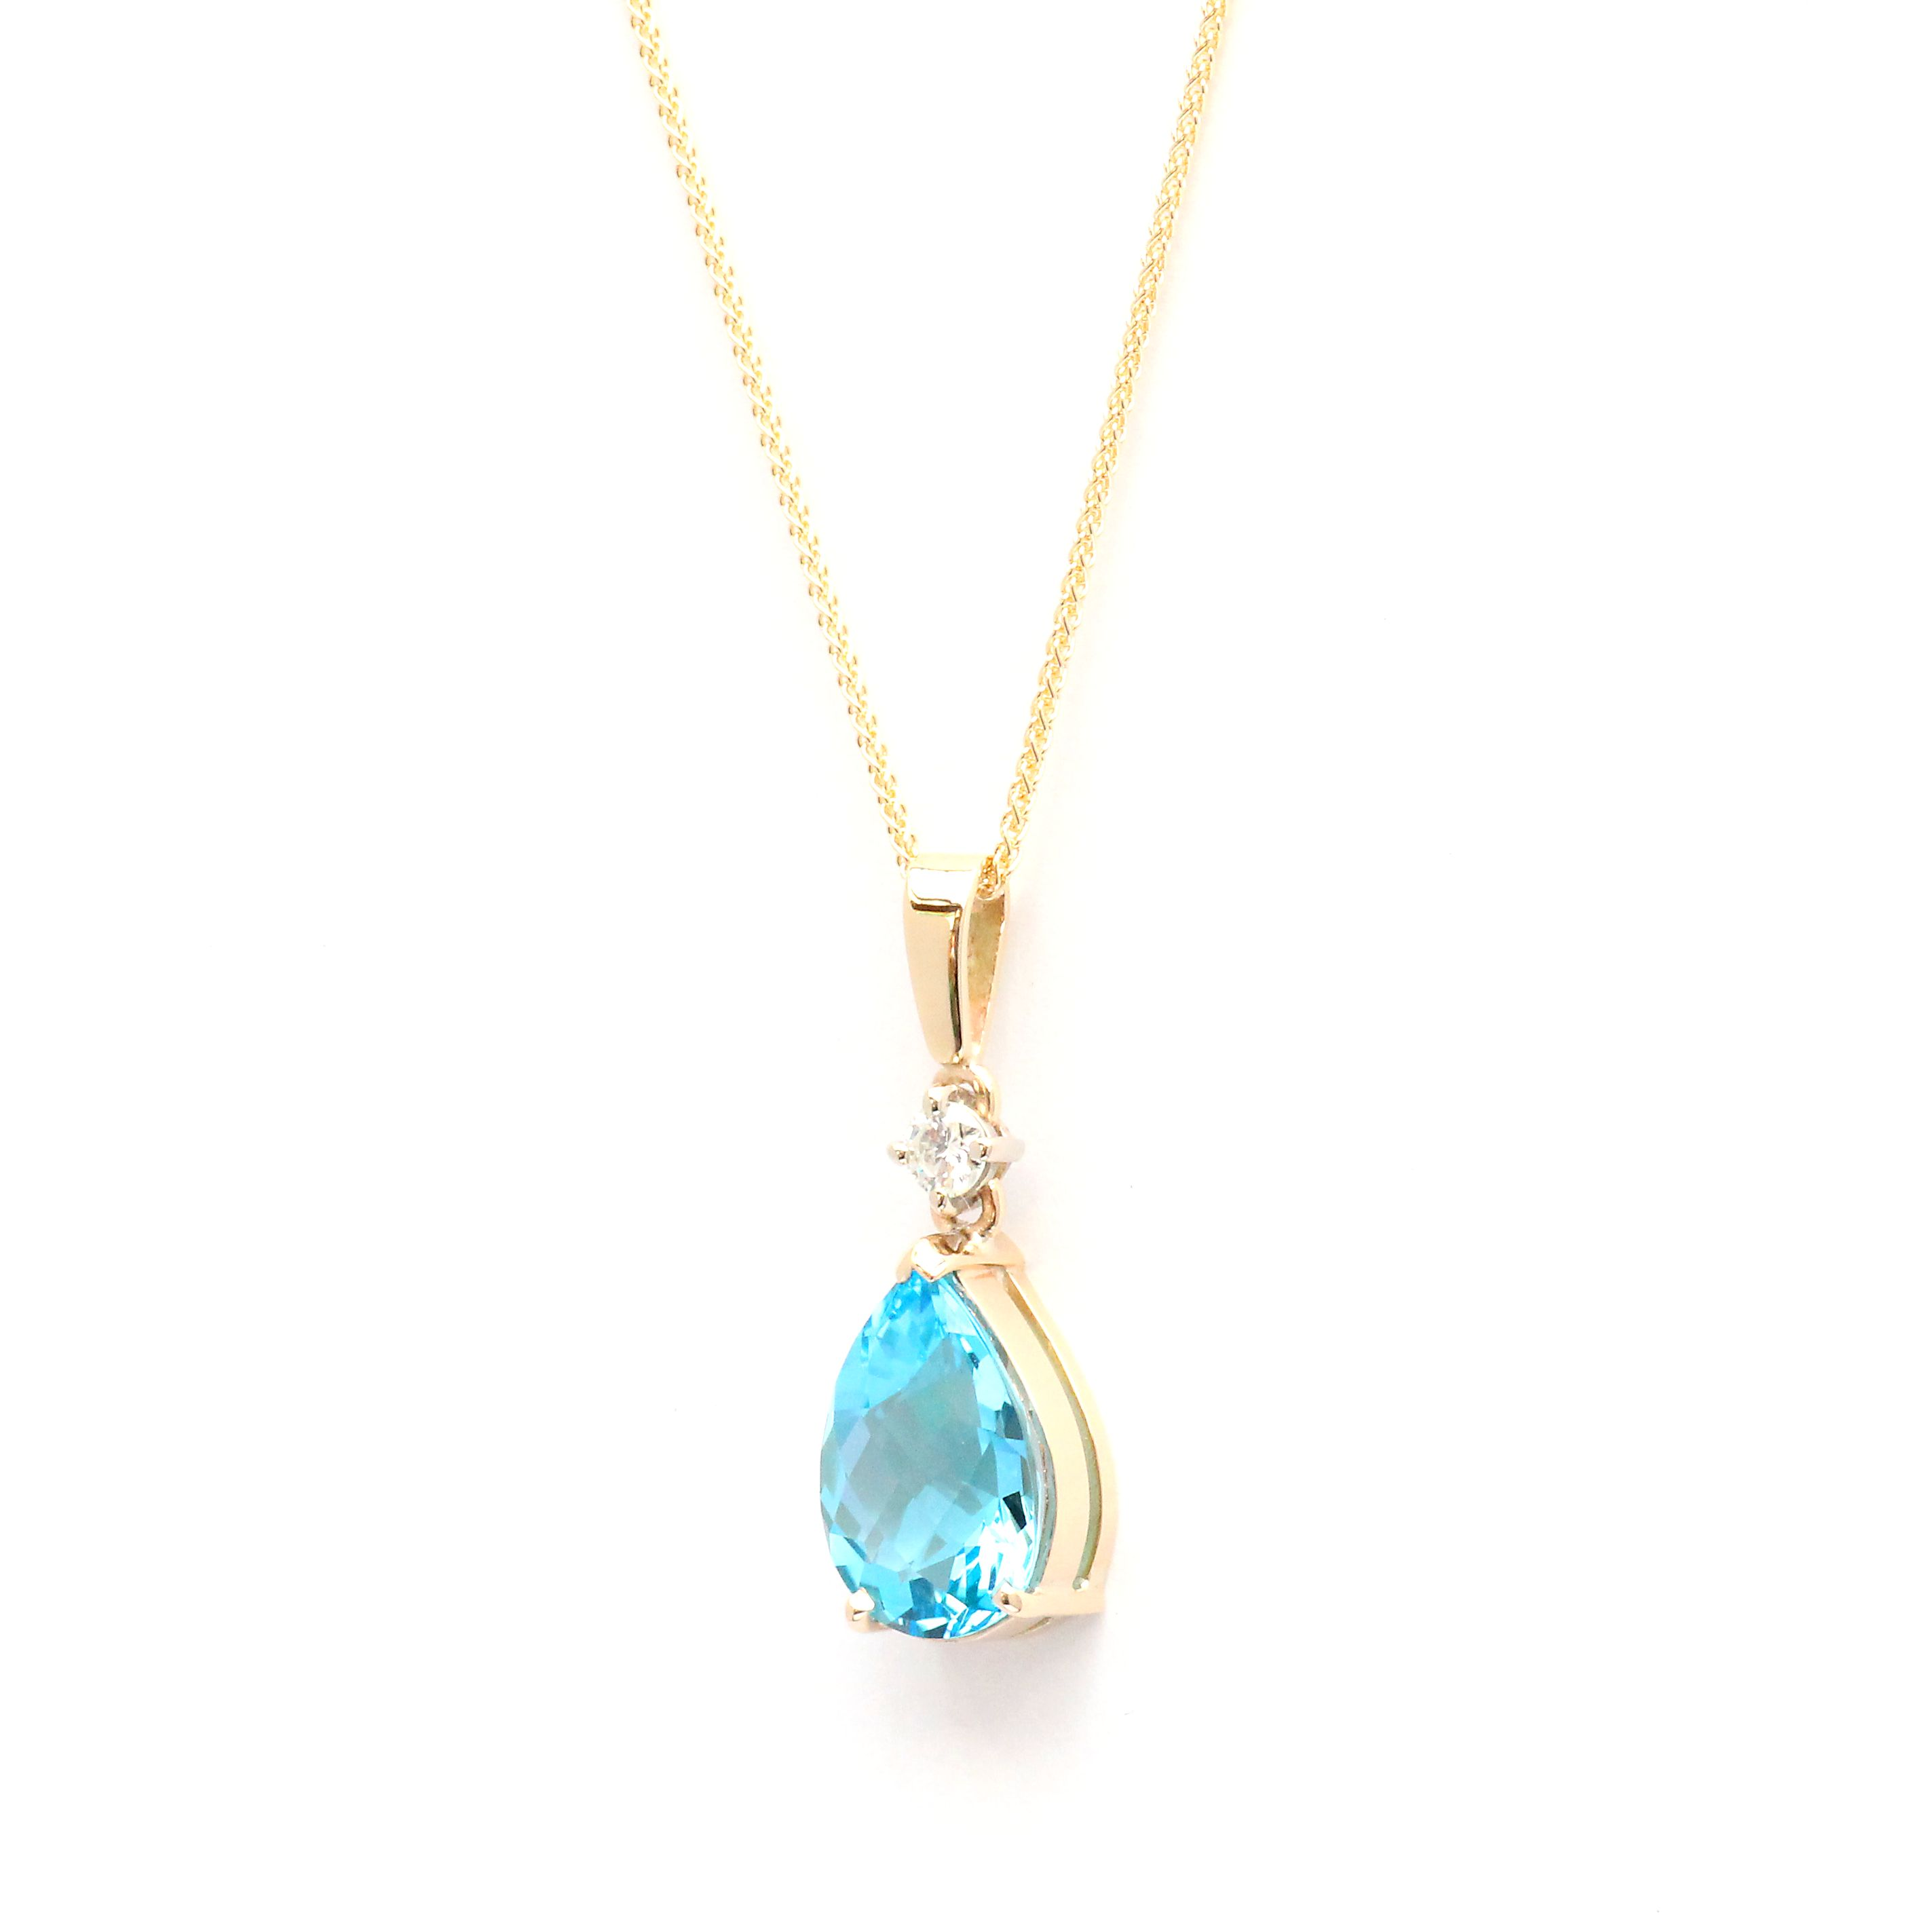 pear tiny products jewellery marie pendant natalie